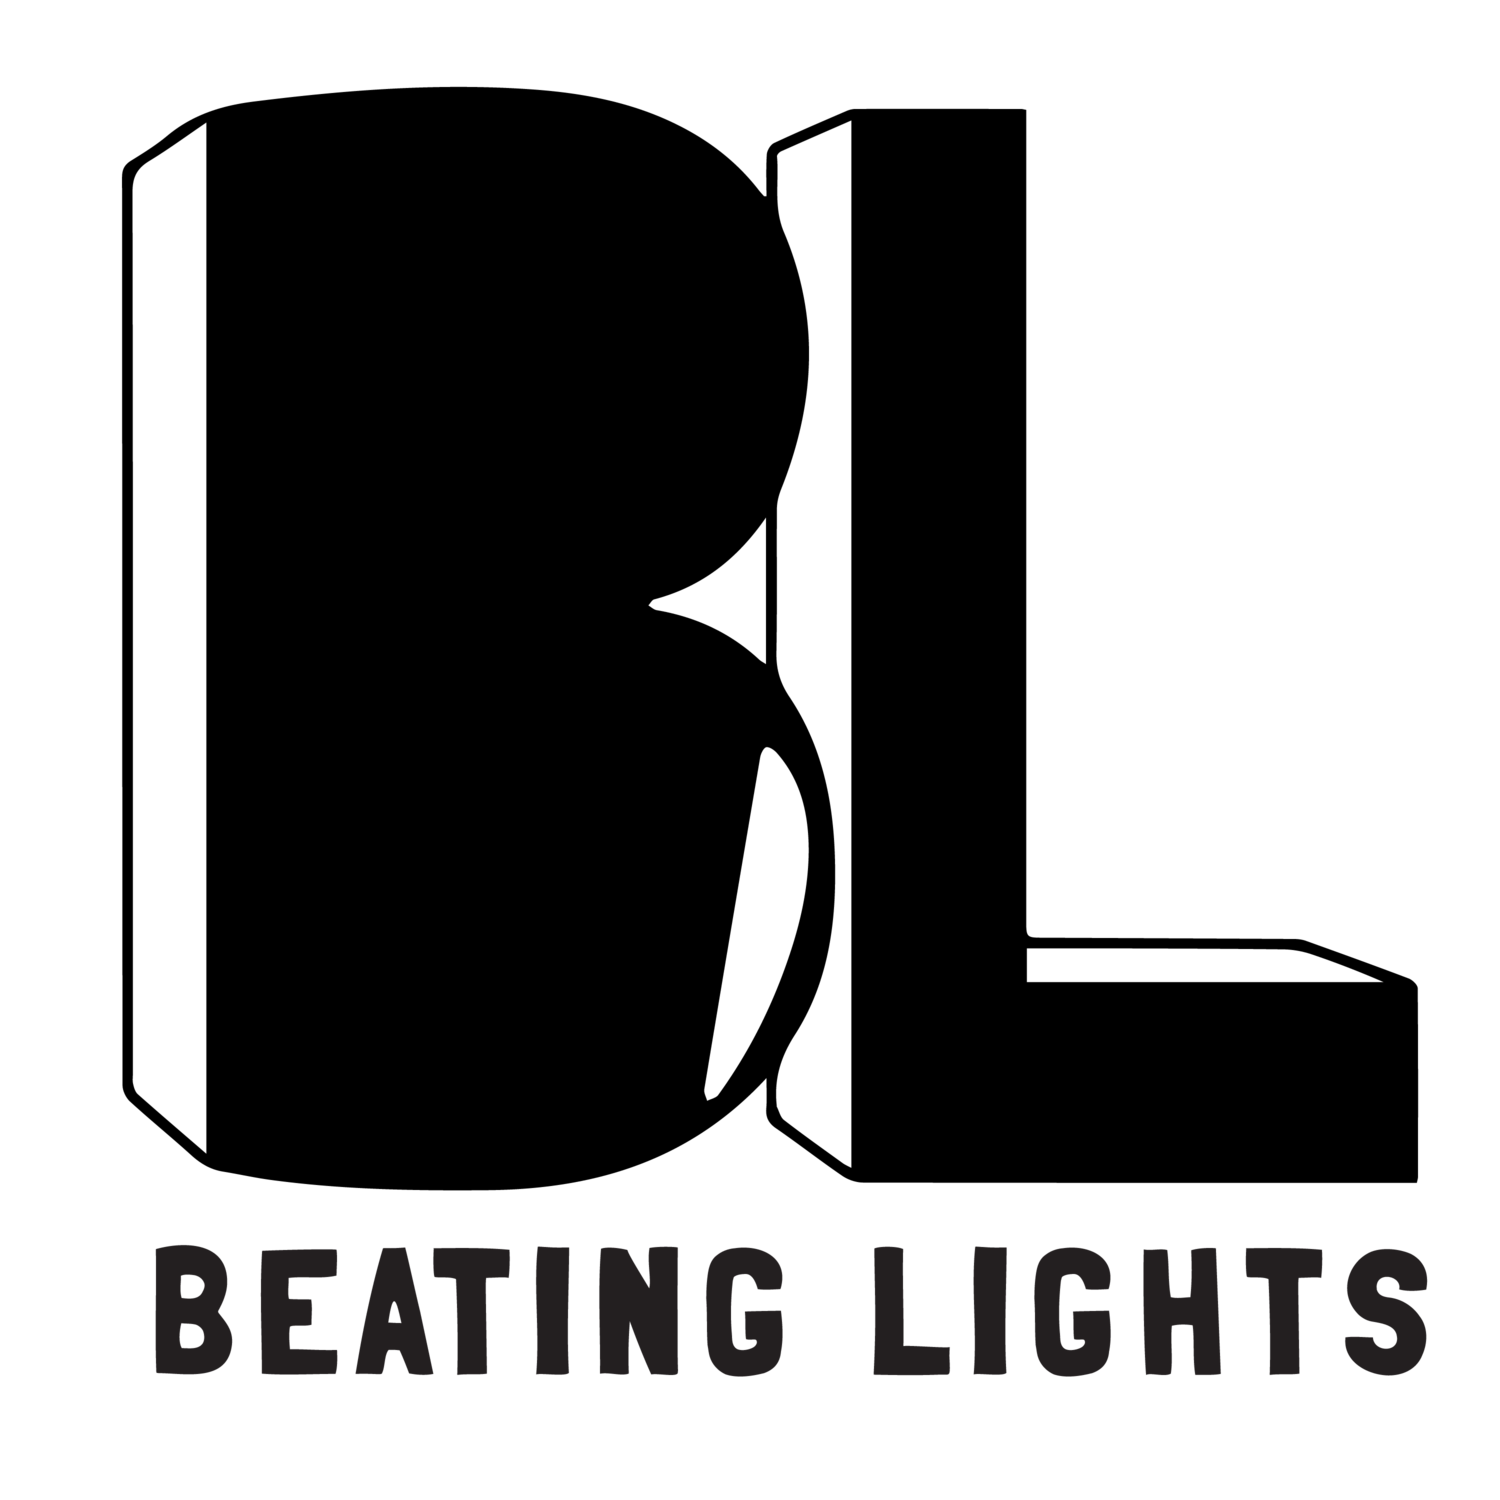 Beating Lights